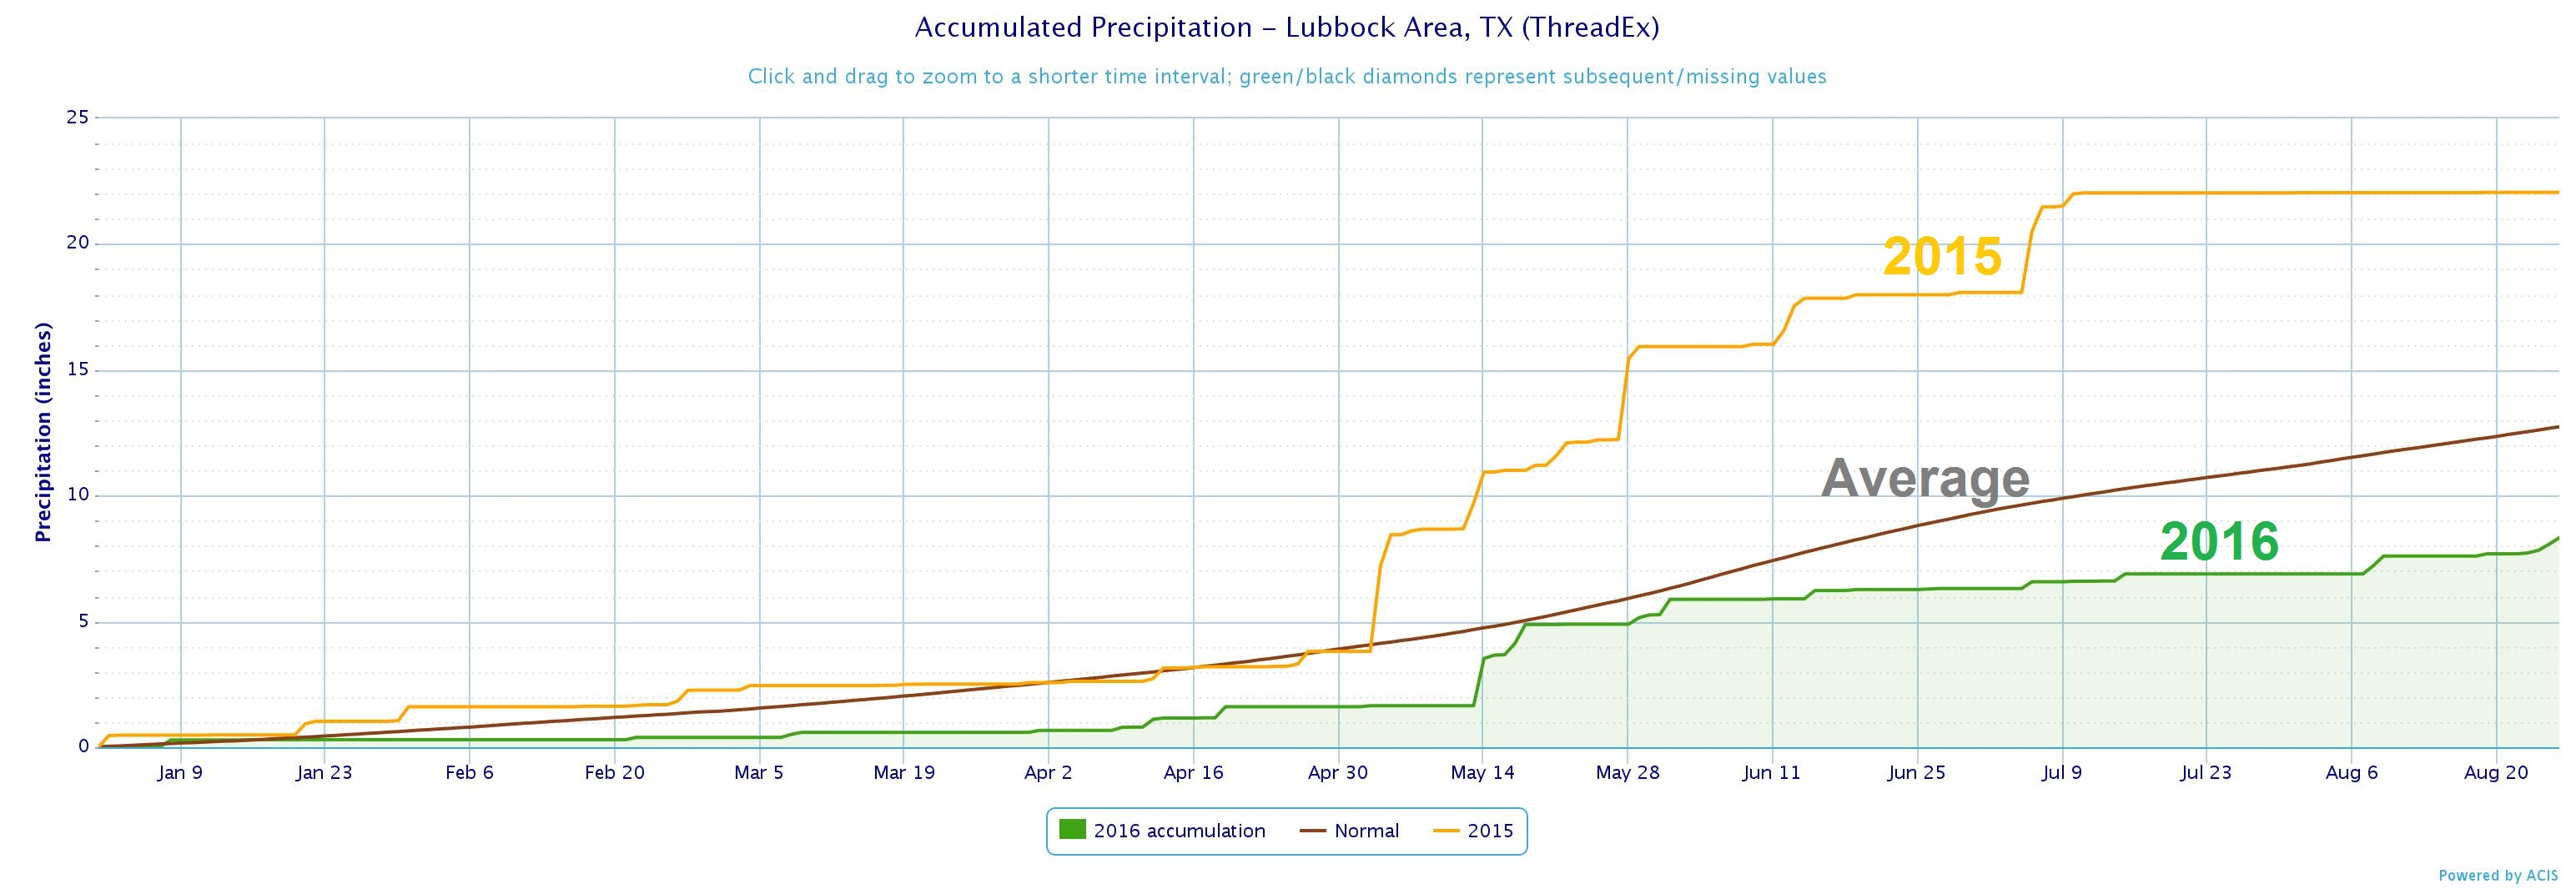 Graph of precipitation at Lubbock through August 26th, 2016